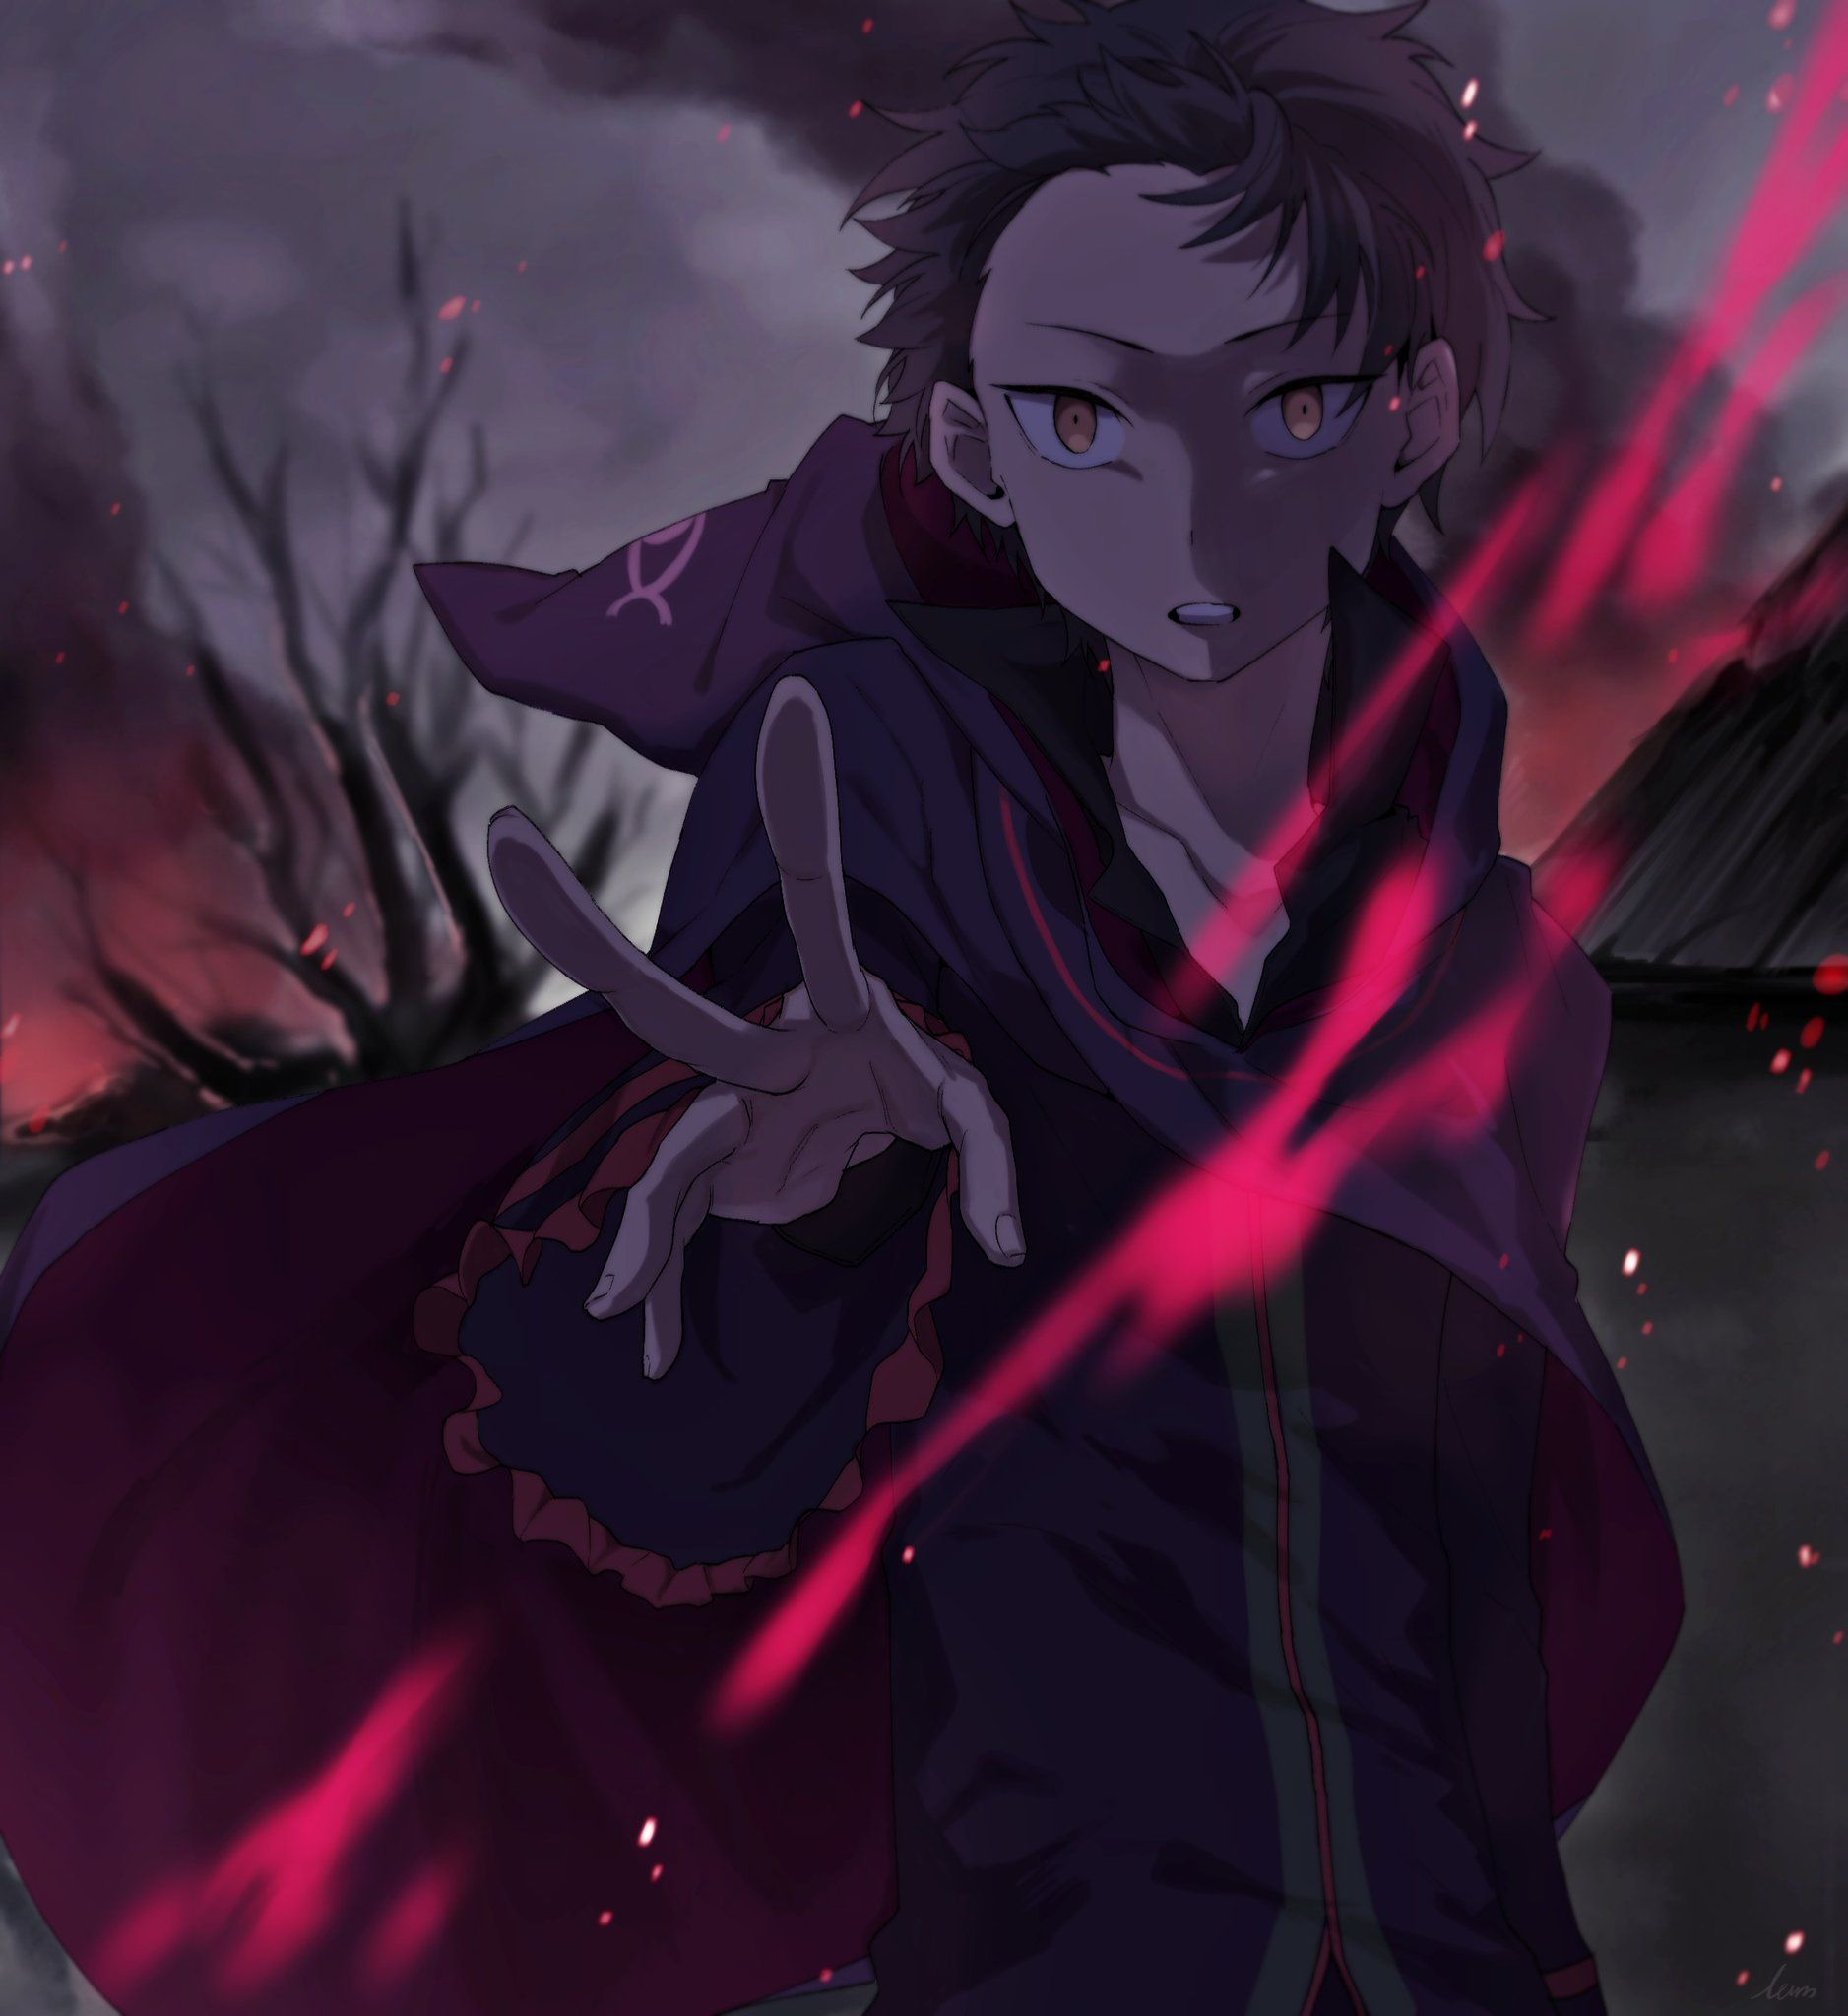 Hmph Let Me Introduce Myself I Am The Witch Cults Sin Archbishop Representing Pride Natsuki Subaru Rezero Anime Ani Animes Wallpapers Re Zero Anime